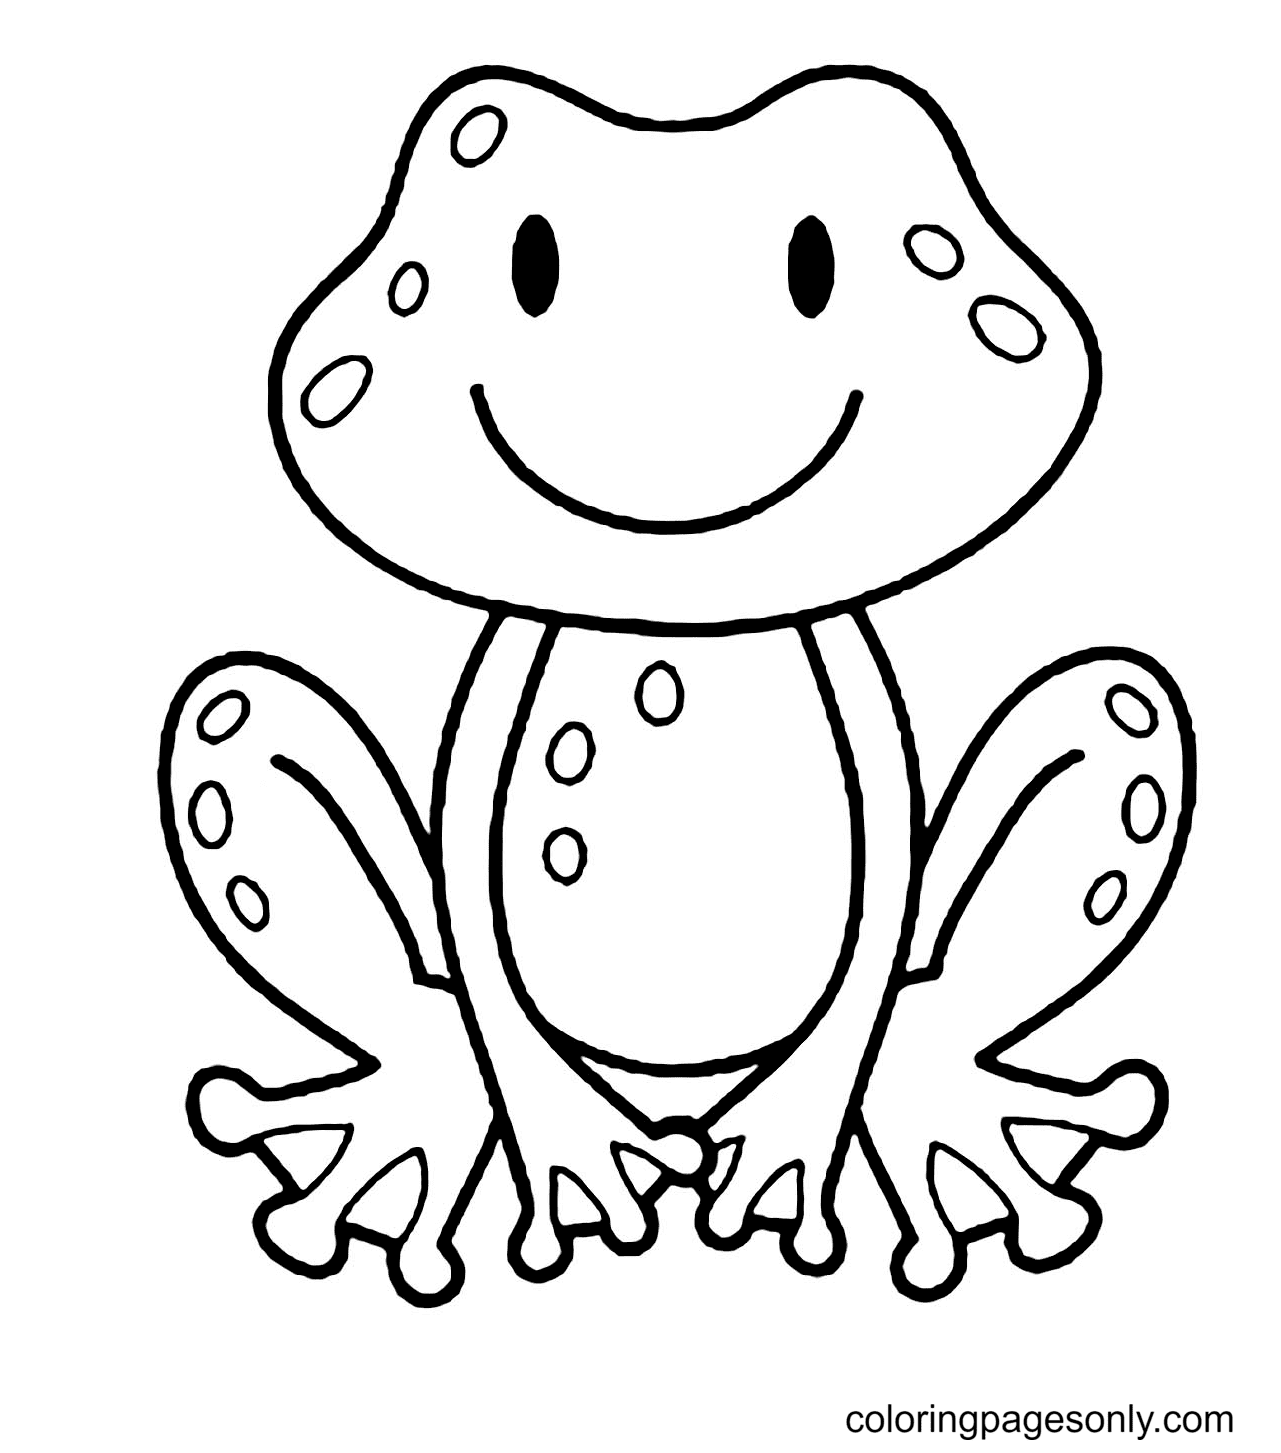 Cute Free Frog Coloring Page